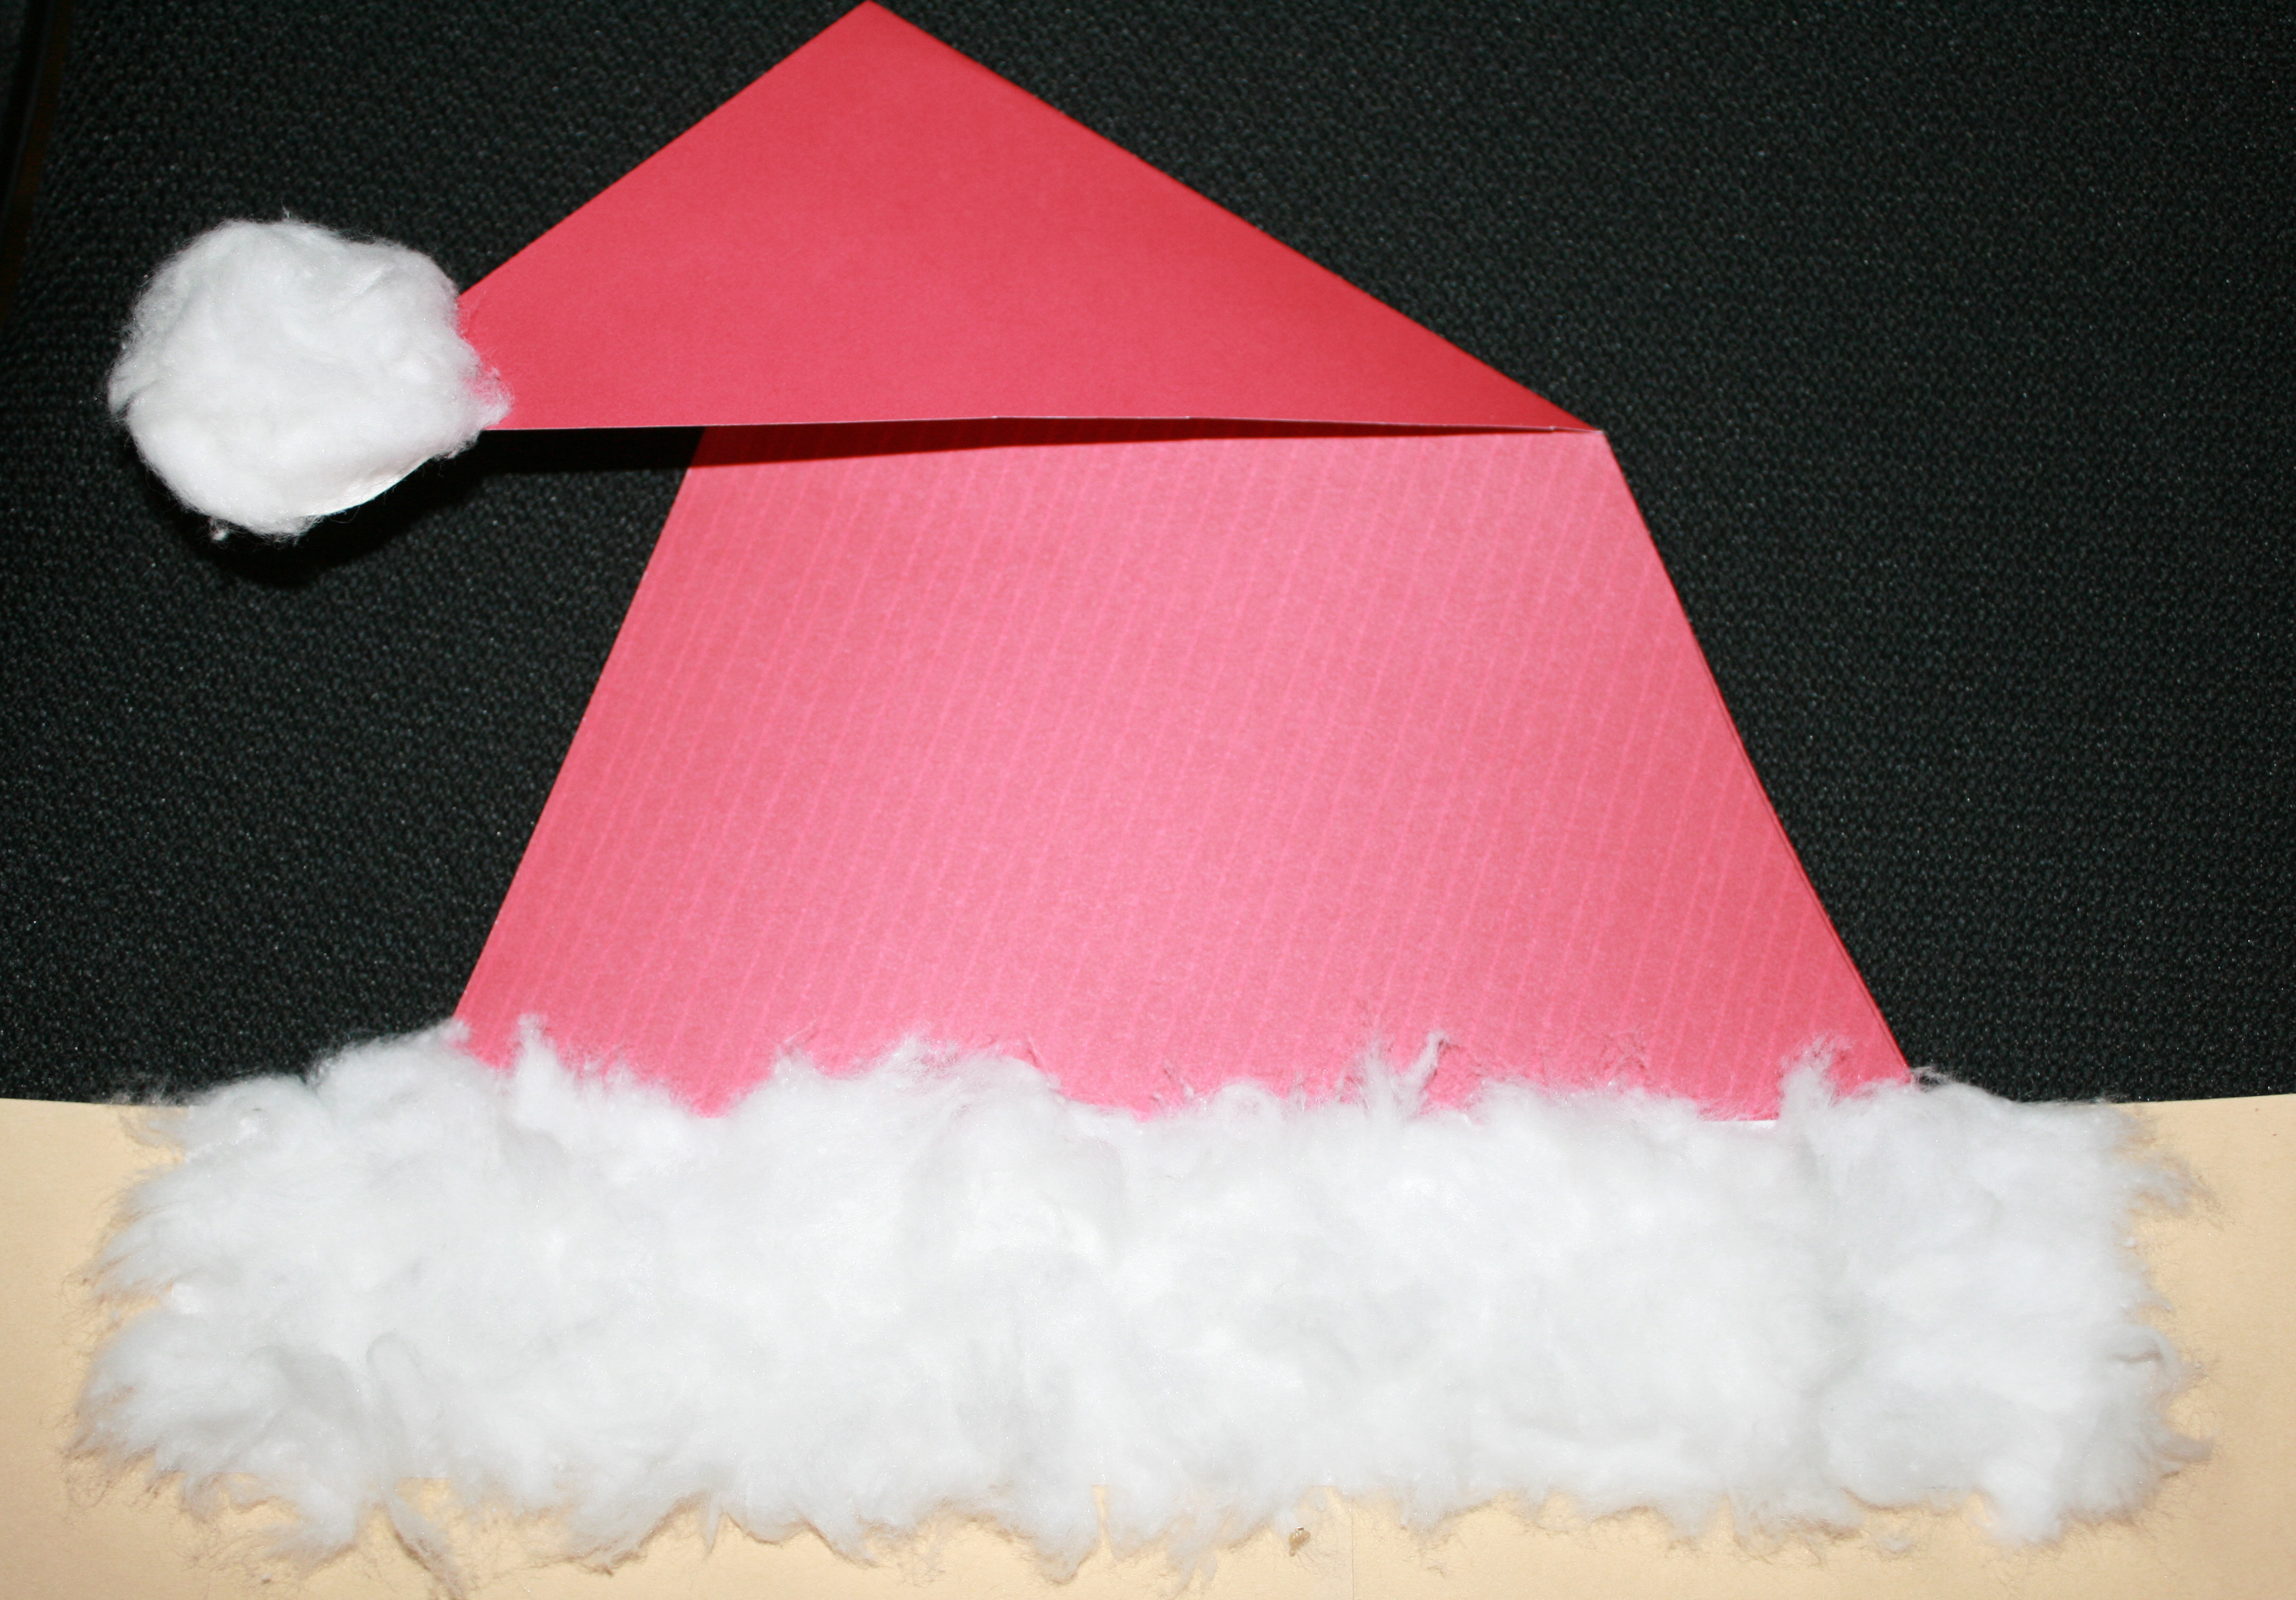 Santa's fur hat, cylinder shape, 3D shapes, art projects with shapes, Santa windsock, windsocks, Christmas crafts for kids, keepsake crafts, handprint art, handprint crafts, handprint Santa, cylinder art projects, handprint art projects, December activities, Santa activities, Christmas gifts kids can make